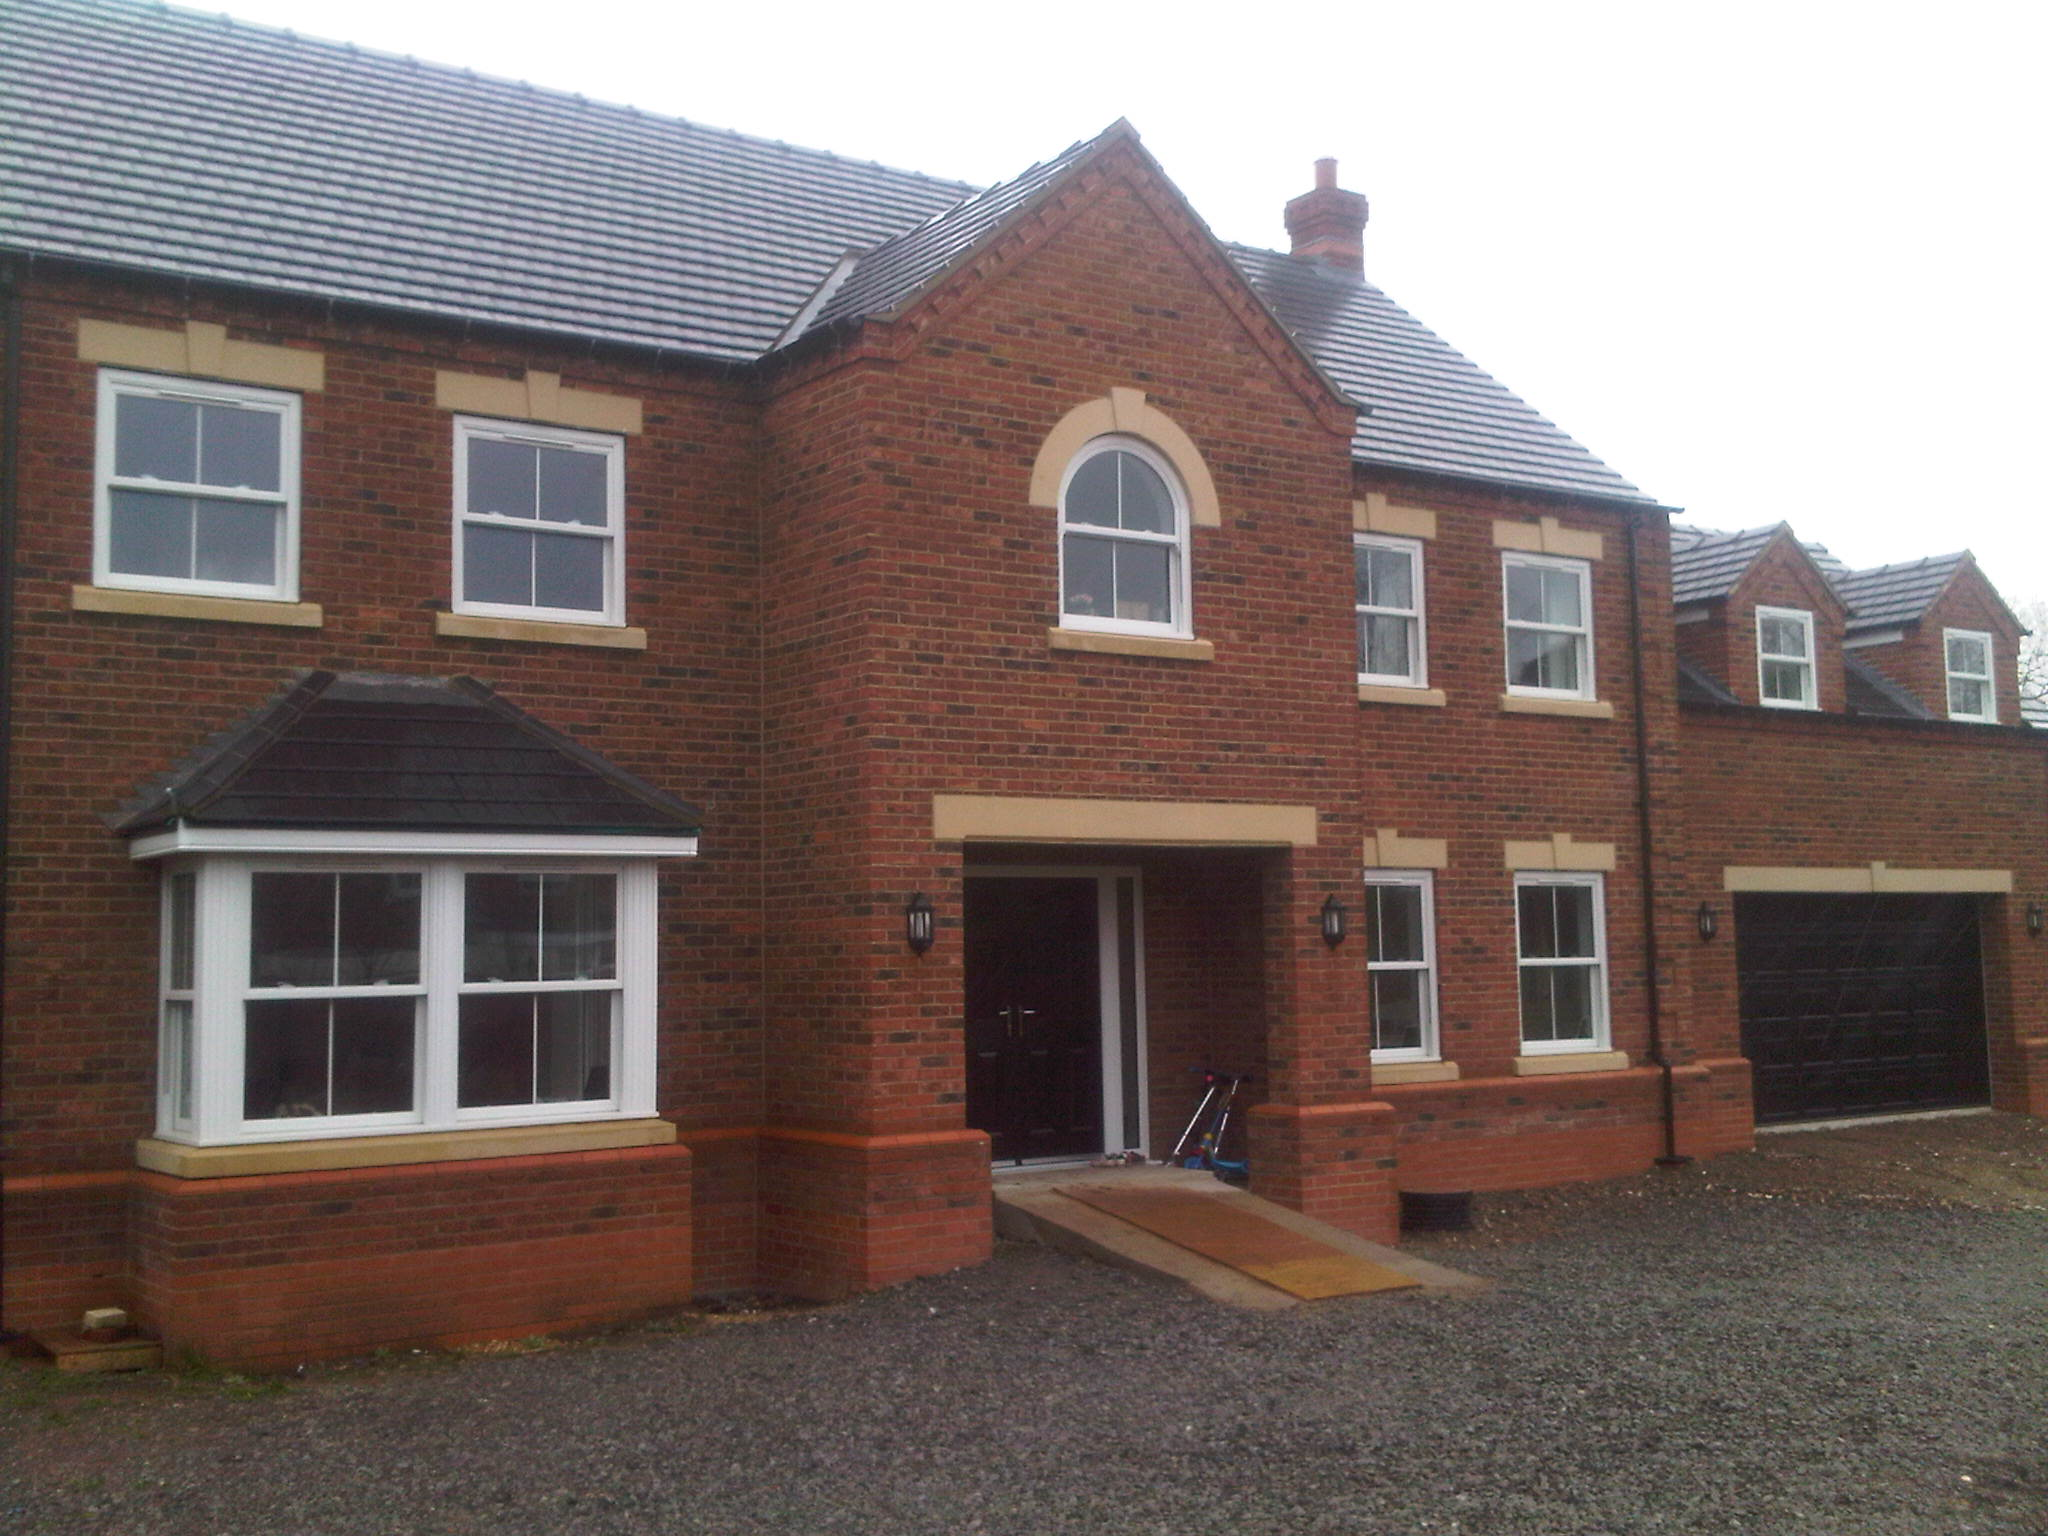 House Front Design Ideas Uk Architect Services For New House In Louth  Grimsby